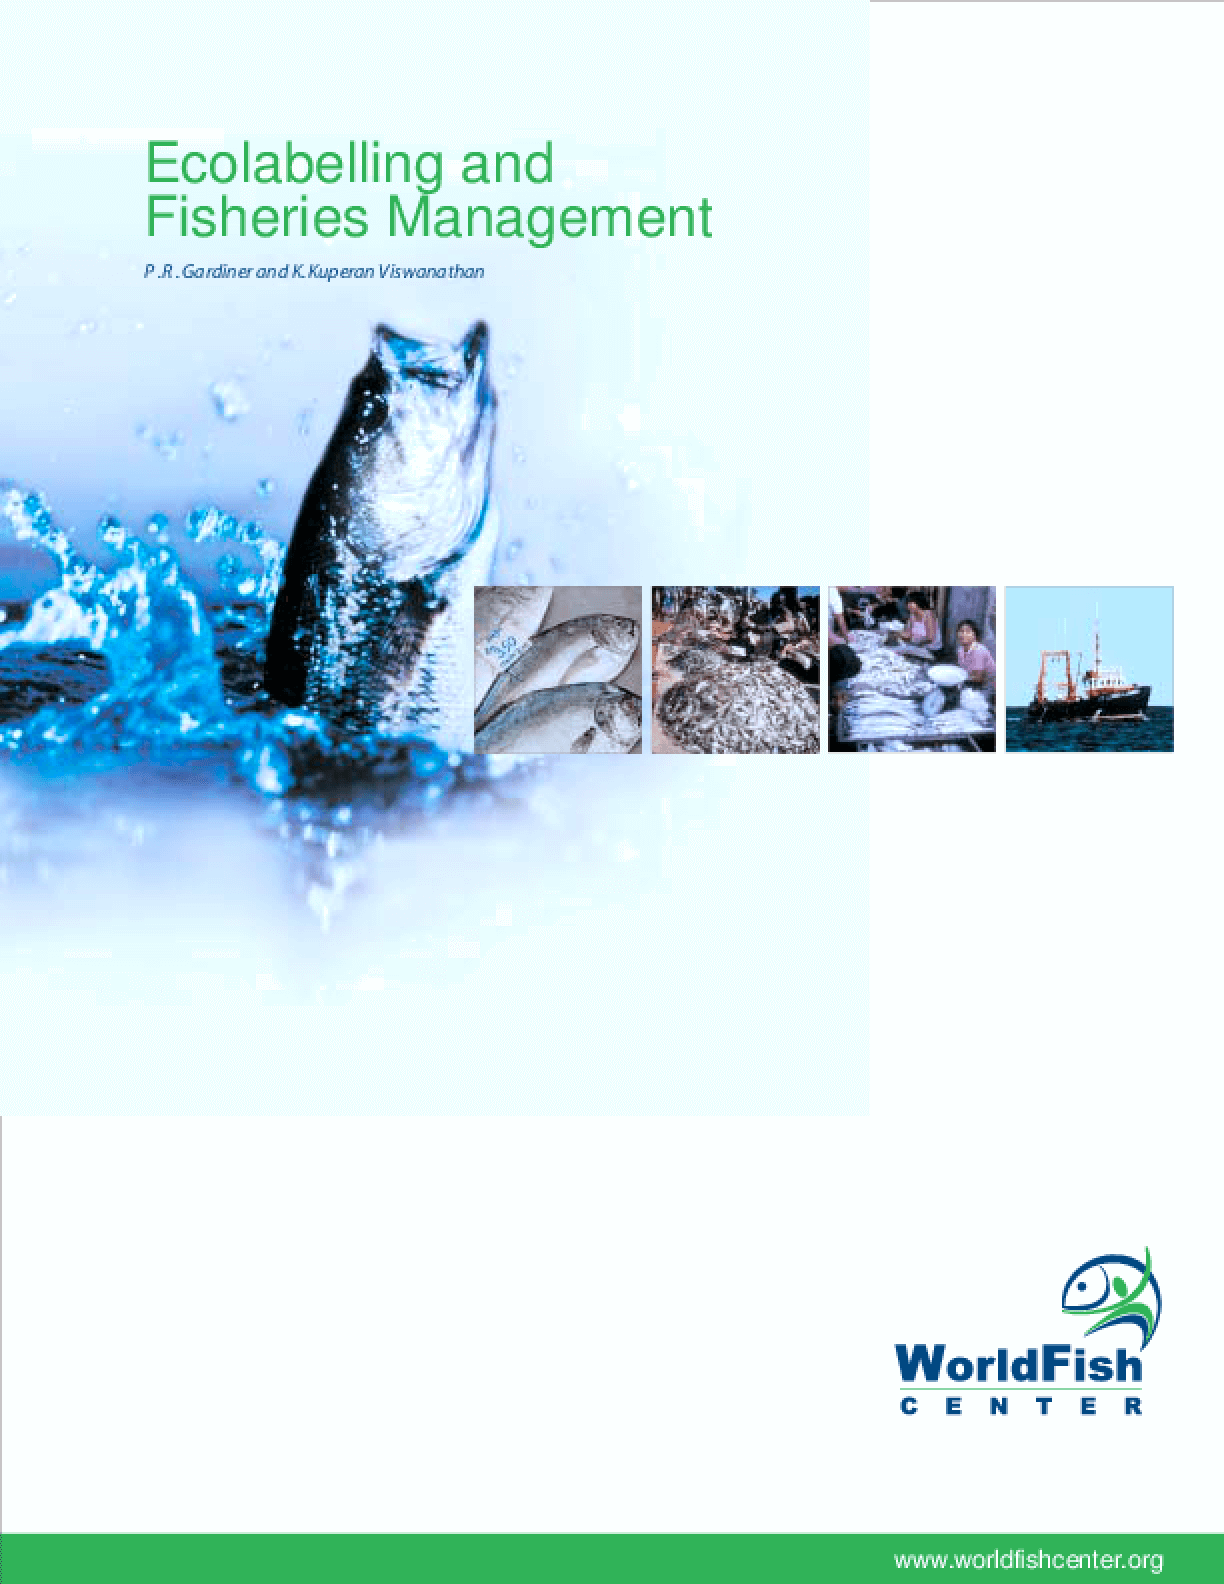 Ecolabelling and Fisheries Management